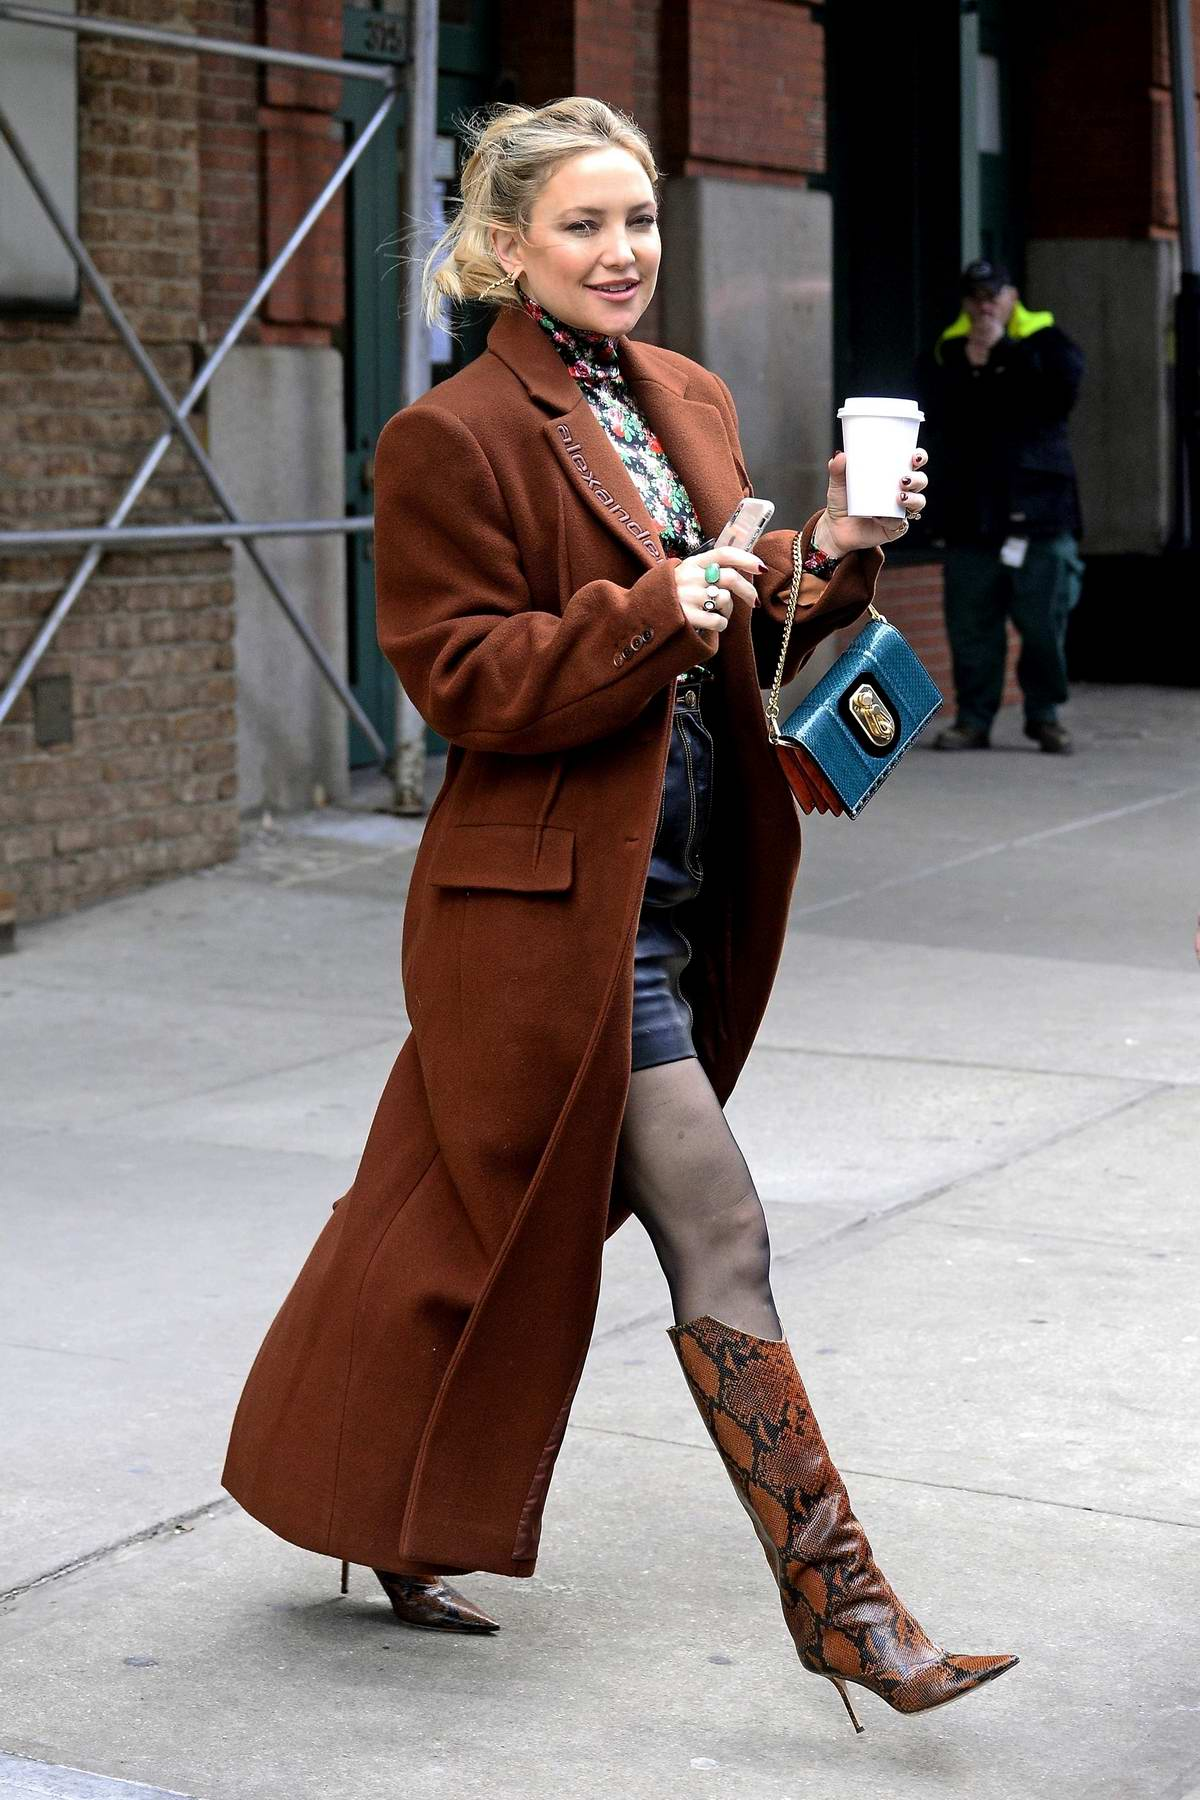 Kate Hudson looks stunning in a brown Alexander Wang overcoat paired with a floral top, leather skirt and snakeskin boots as she leaves the Greenwich hotel in New York City